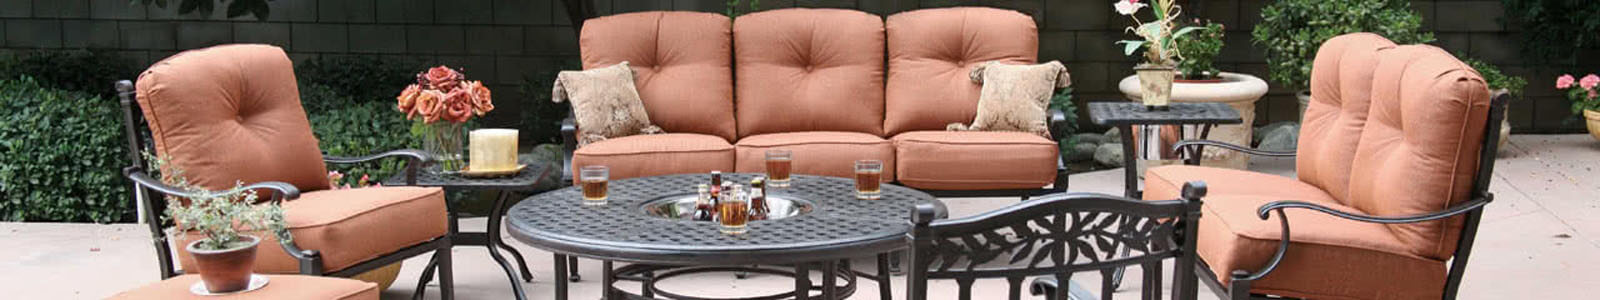 Darlee Patio Furniture & Cast Aluminum Furniture Banner